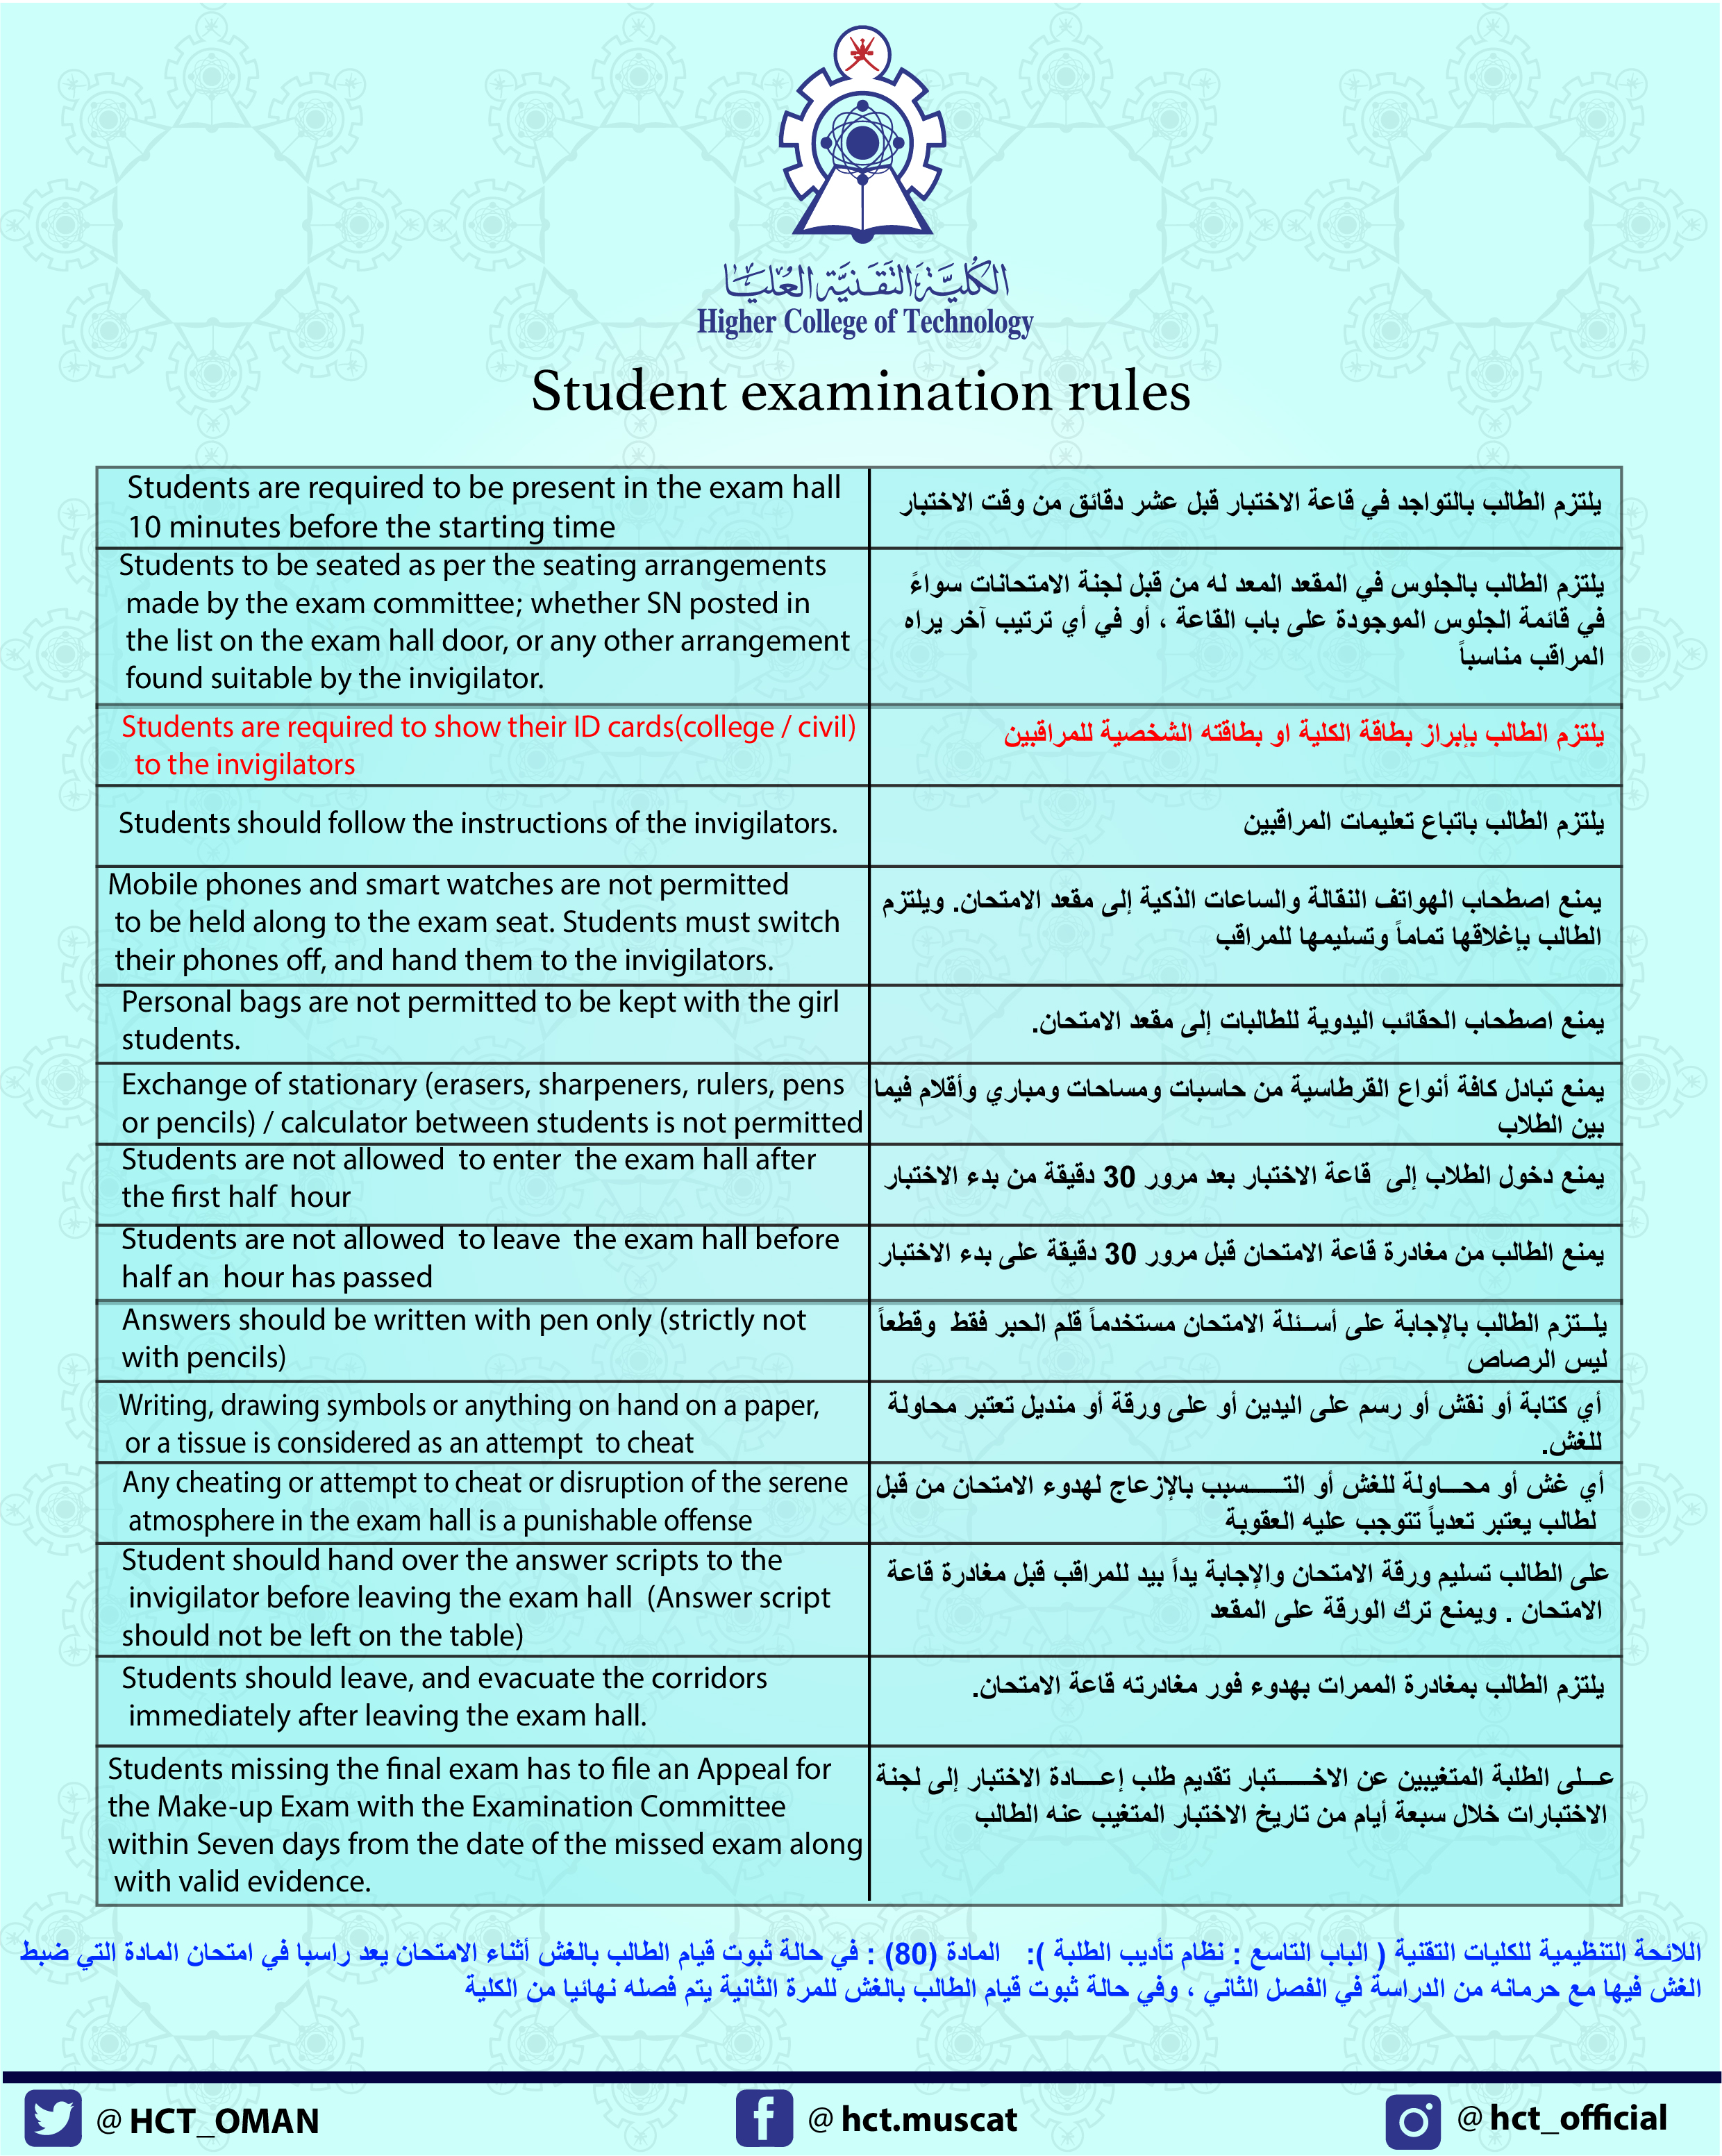 Higher College of Technology - Student Examination Rules